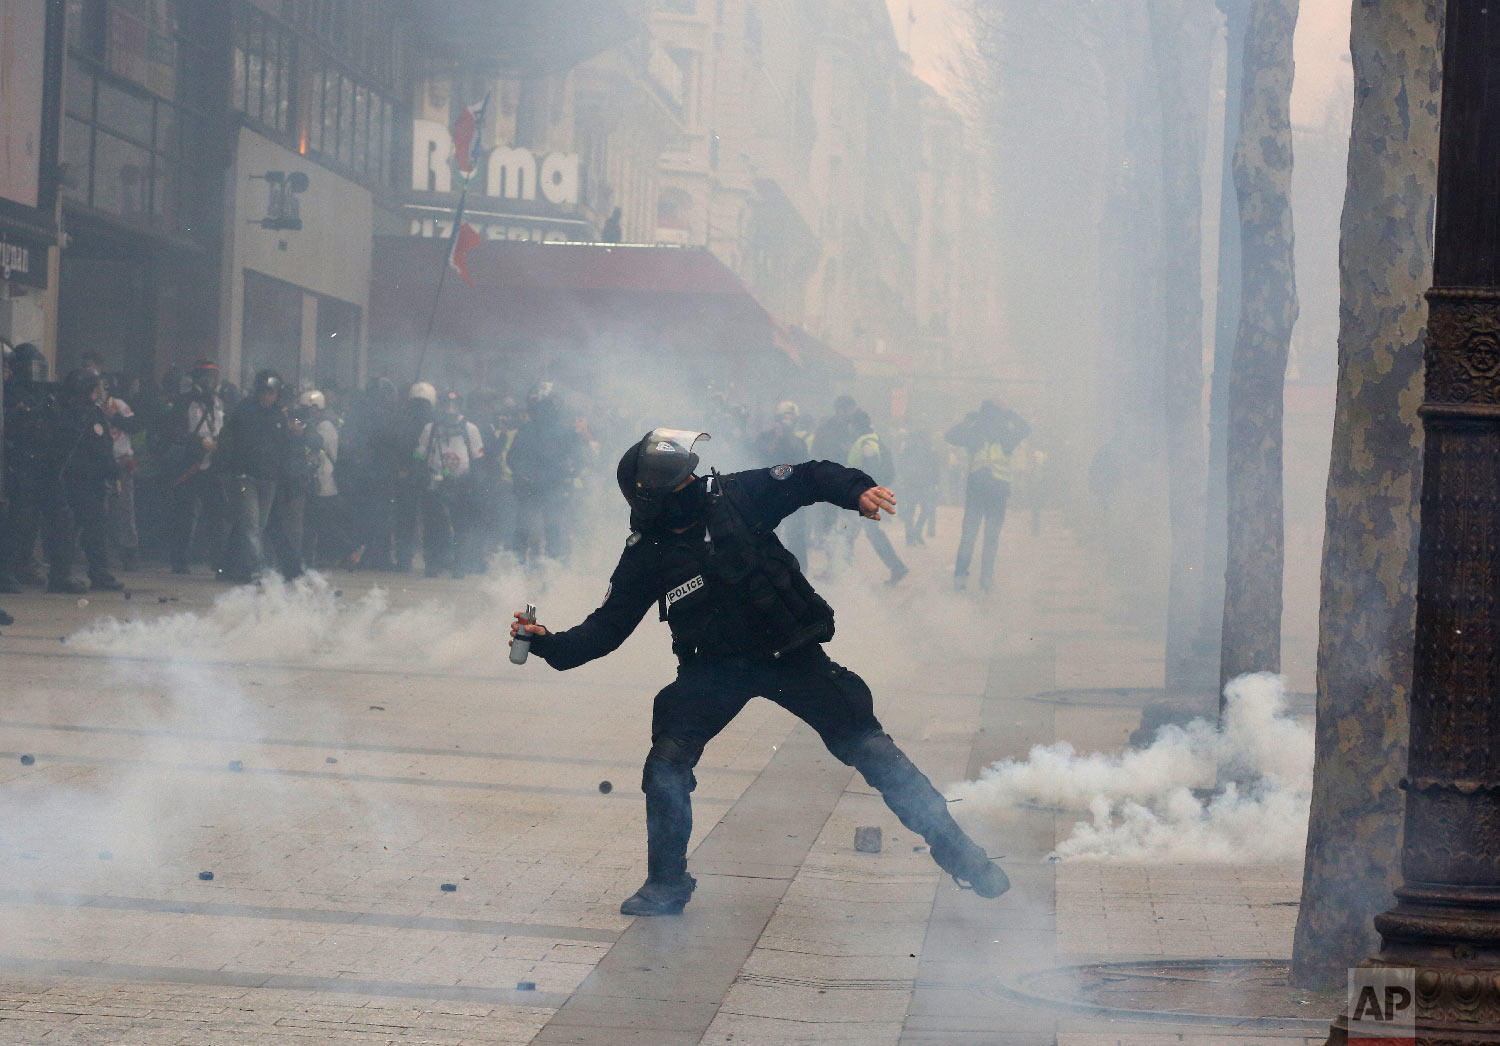 A riot police officer throws a tear gas canister onto protesters during a yellow vests demonstration March 16, 2019. (AP Photo/Christophe Ena)